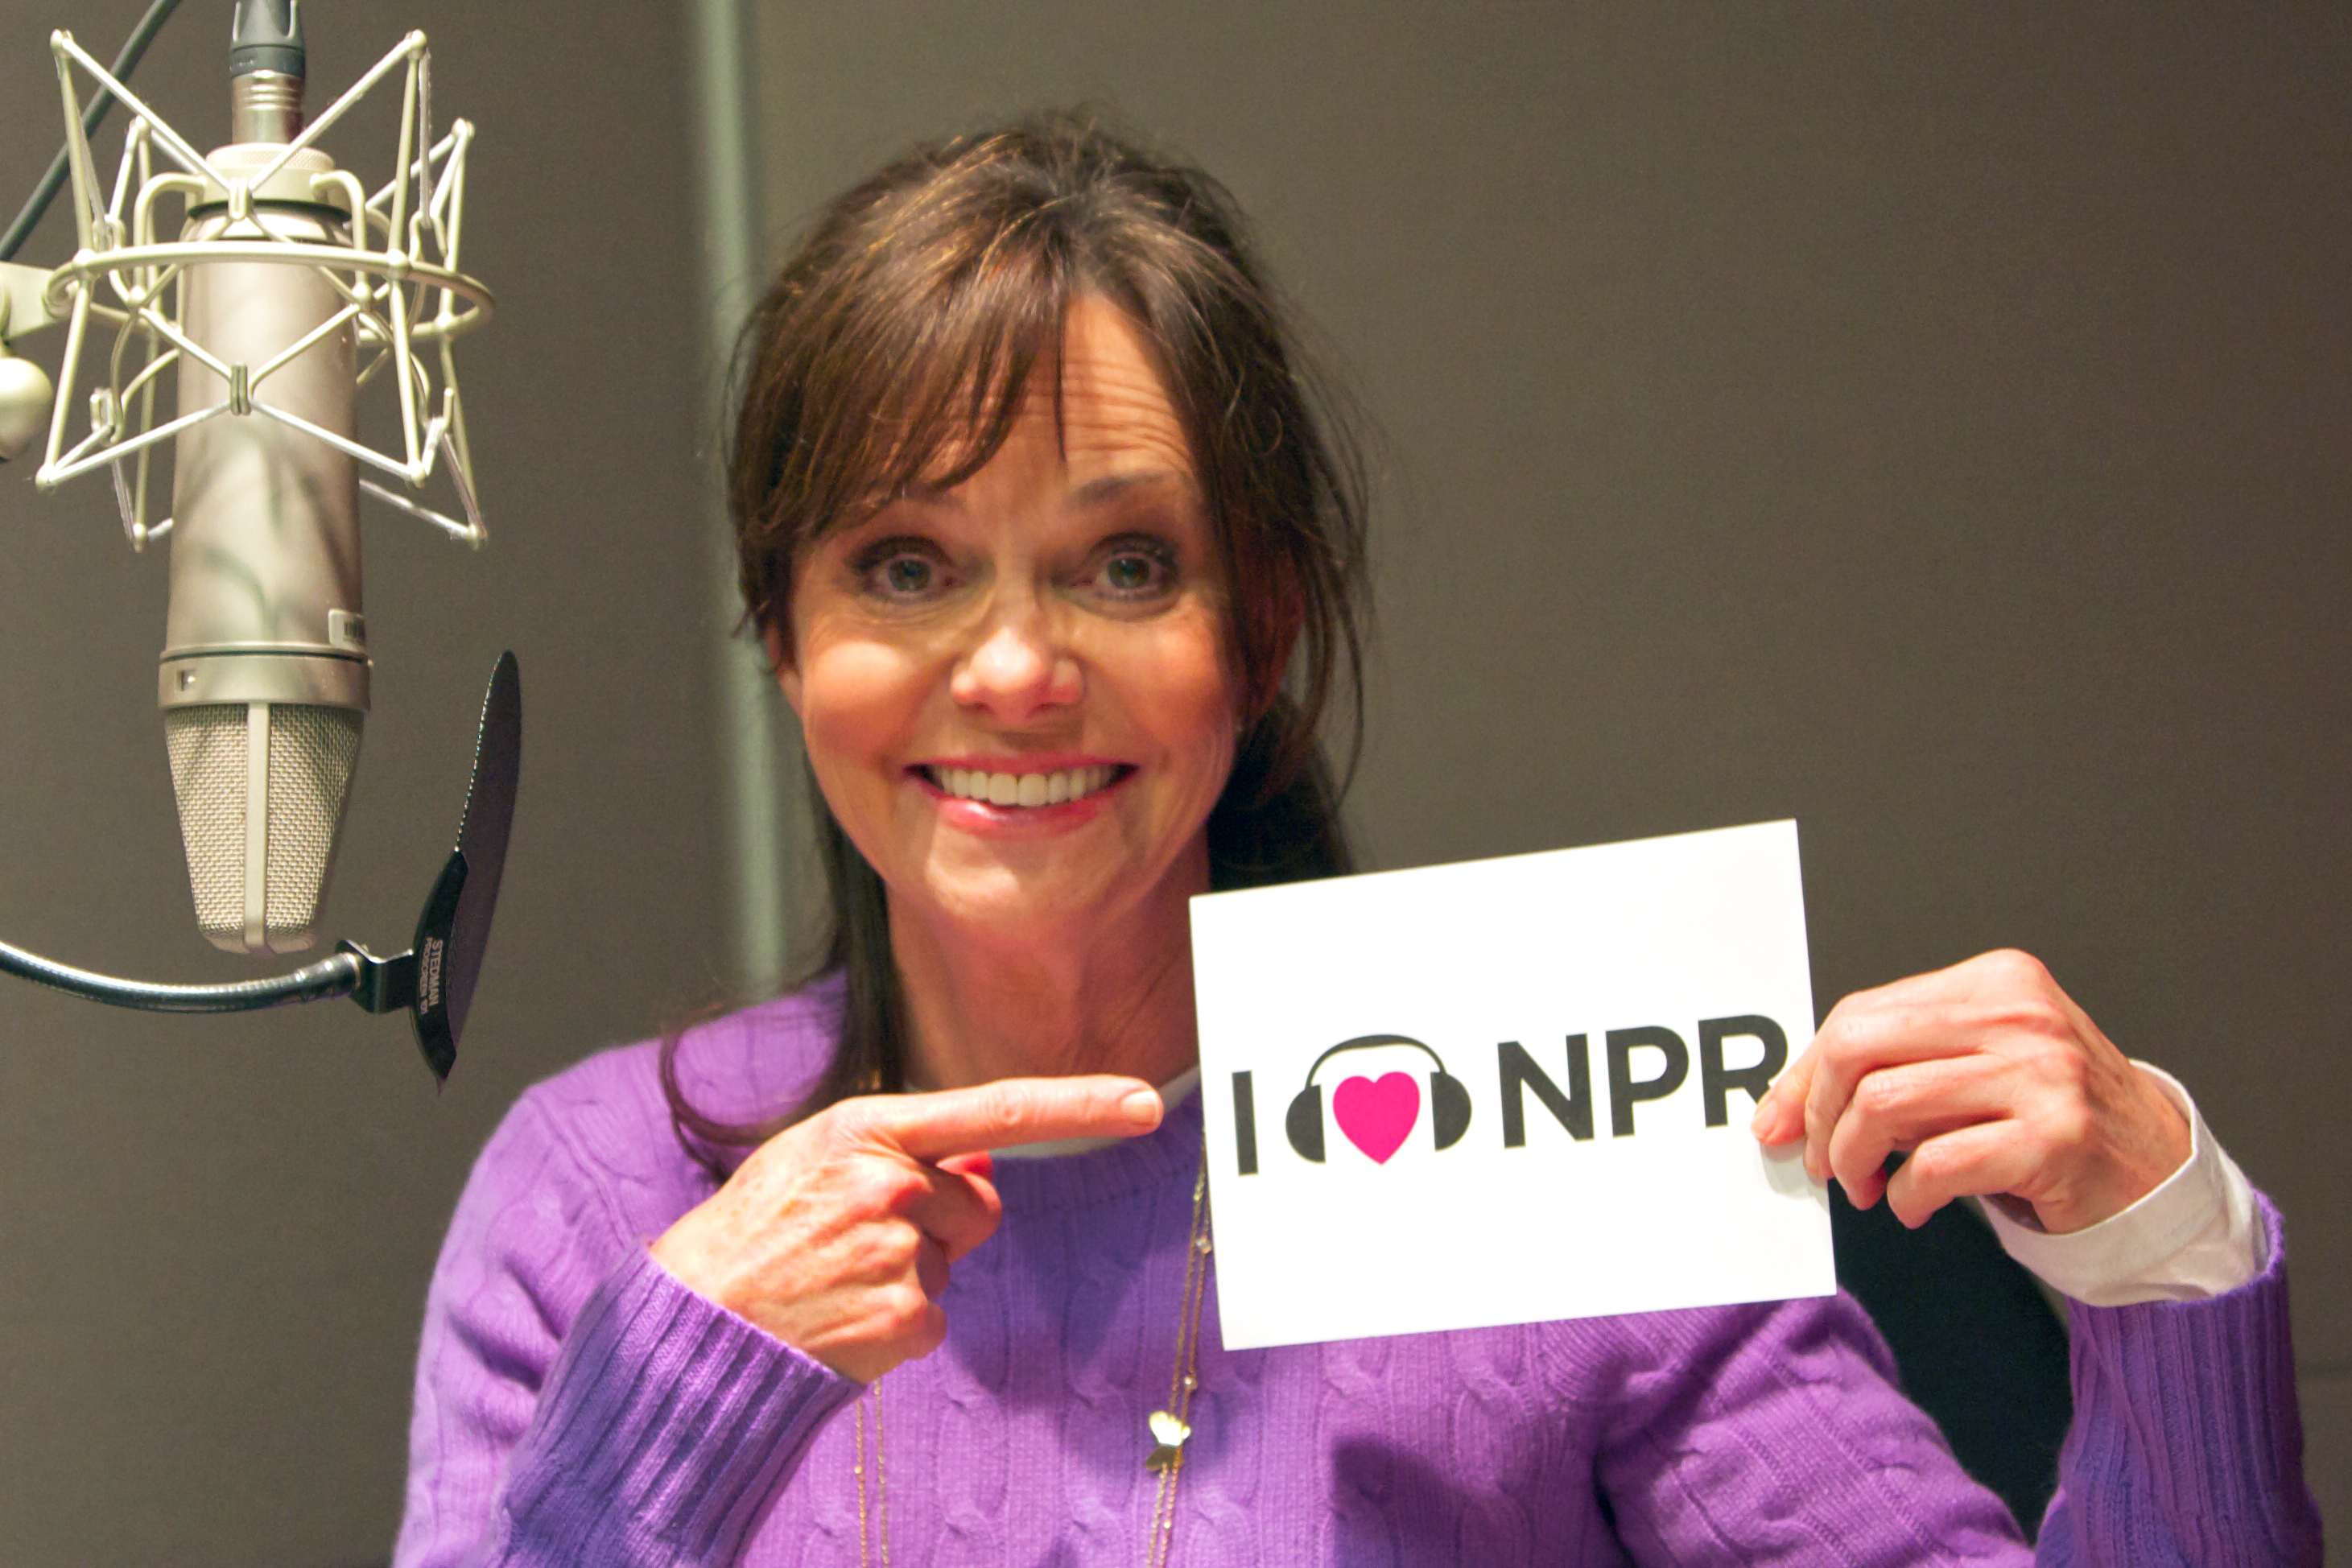 She loves us; she really loves us! Lincoln actress Sally Field went on Talk of the Nation to share details about her extensive preparation for the role of First Lady Mary Todd Lincoln, which earned her a Supporting Actress nod. (http://n.pr/T21hAW)